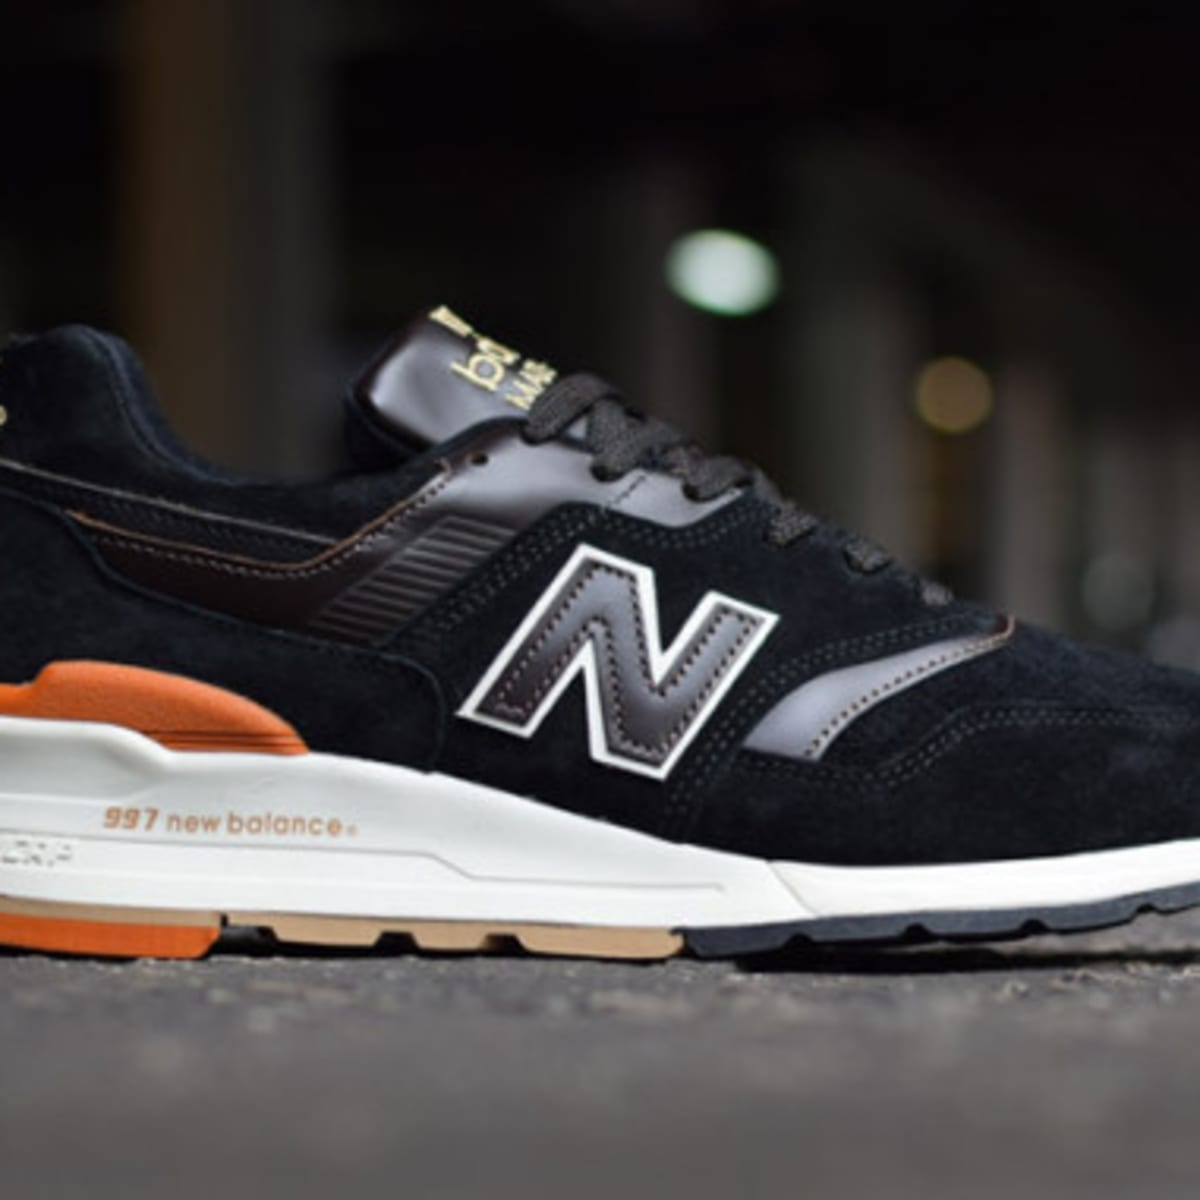 New Balance 997 - Authors Collection - Freshness Mag